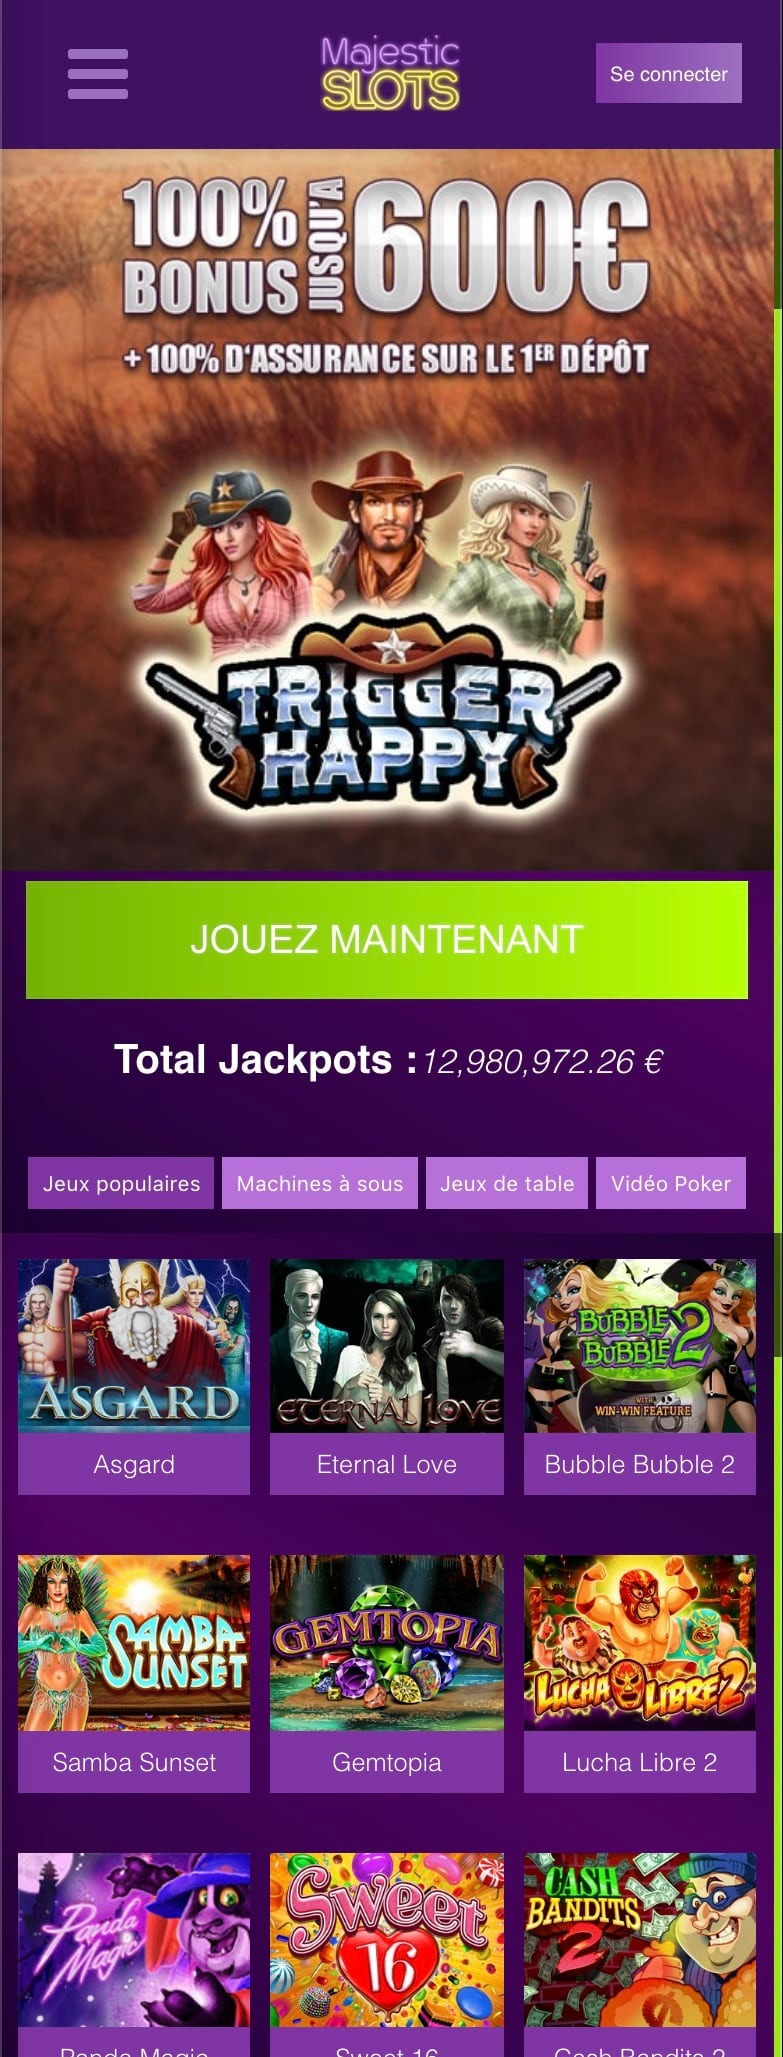 Majestic Slots Officiel